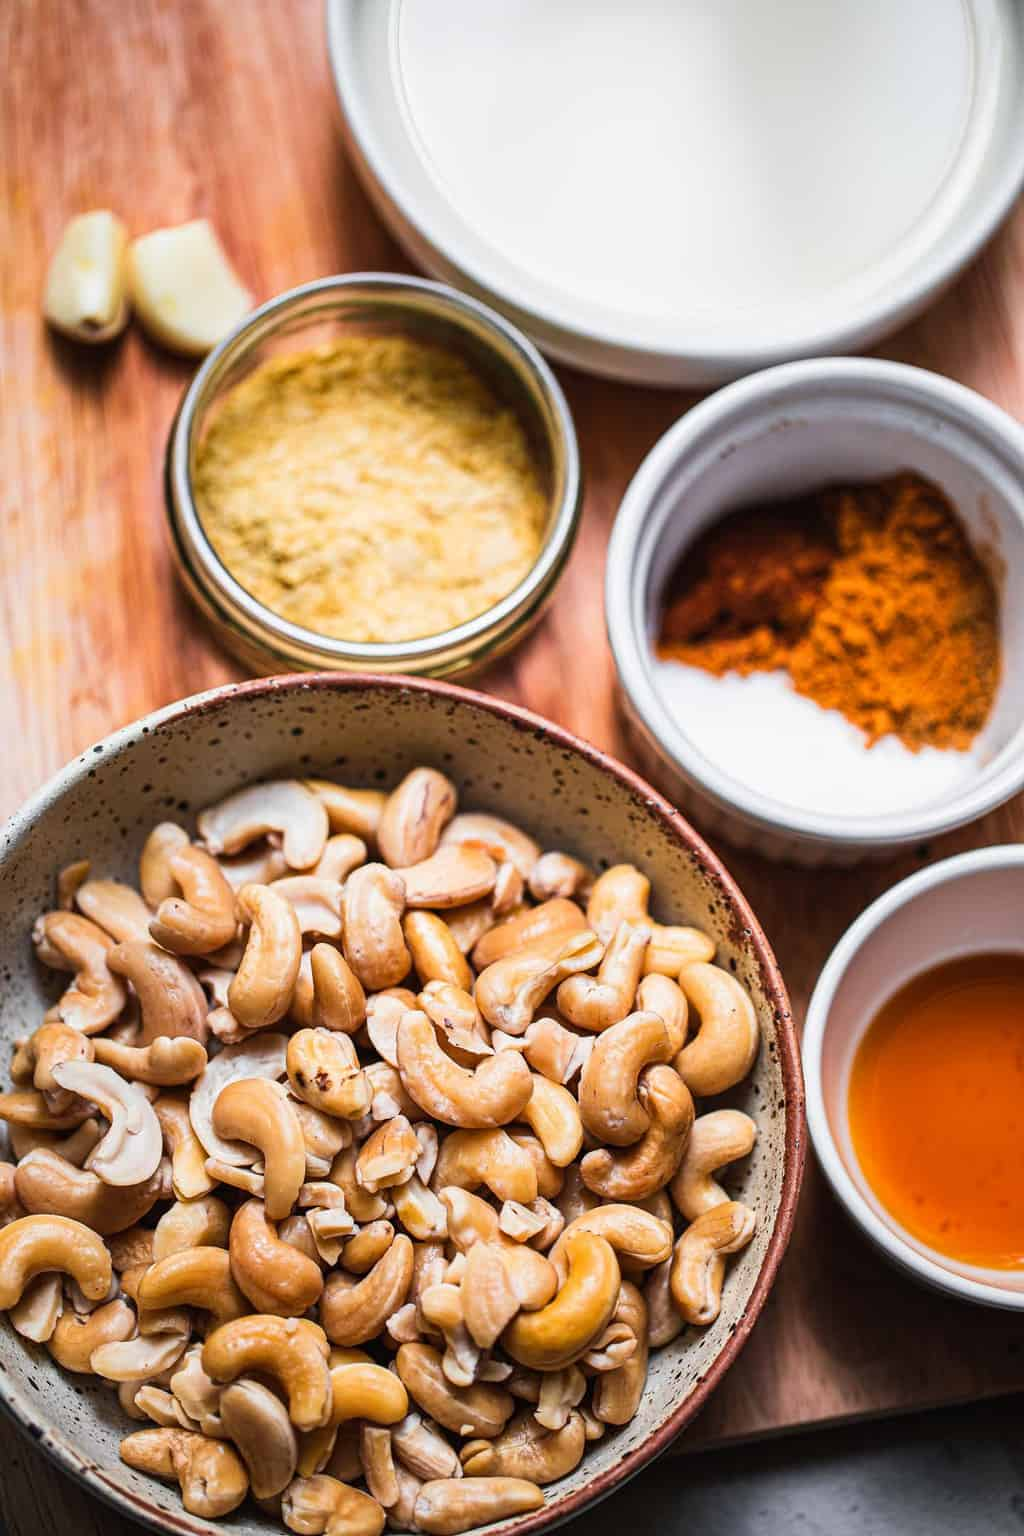 Cashew cream ingredients